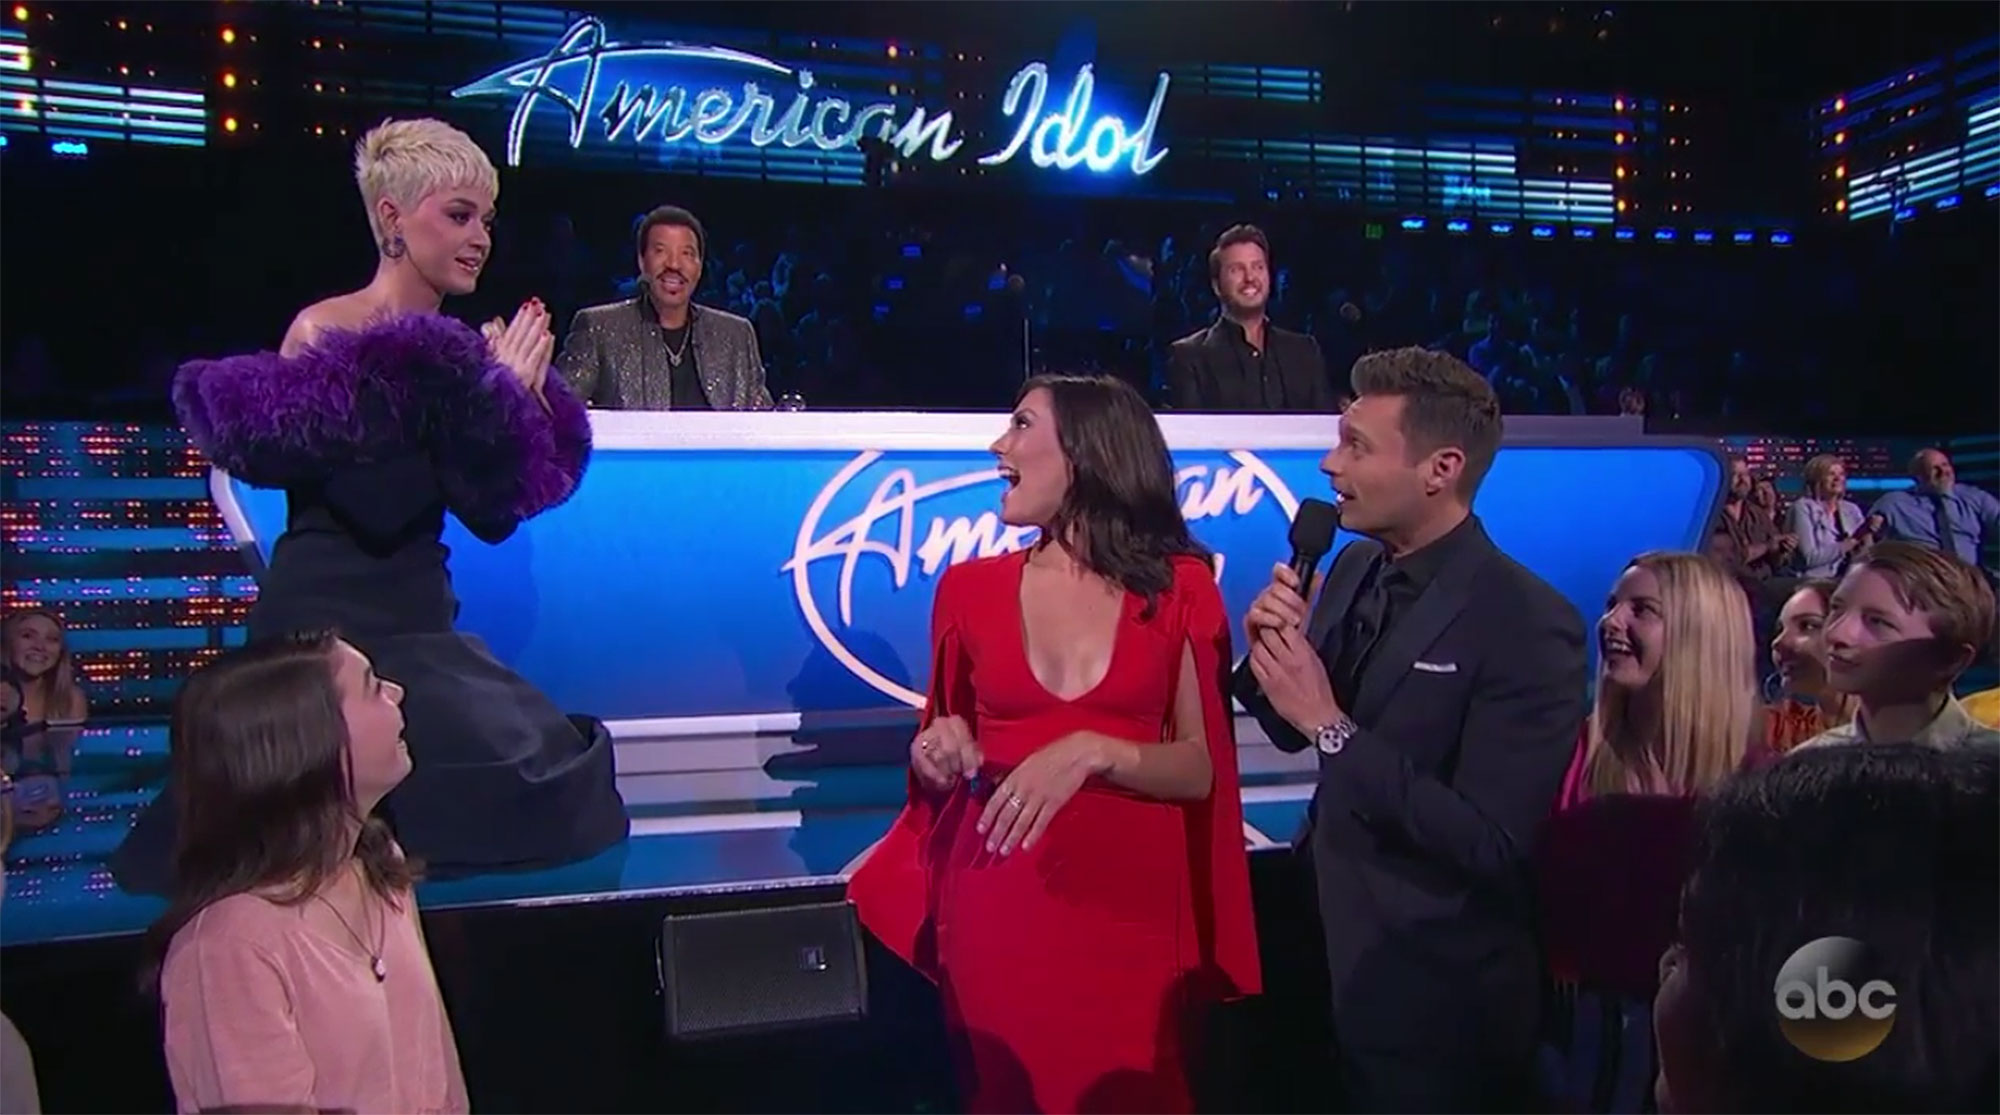 Katy Perry Americal IdolCredit: ABC